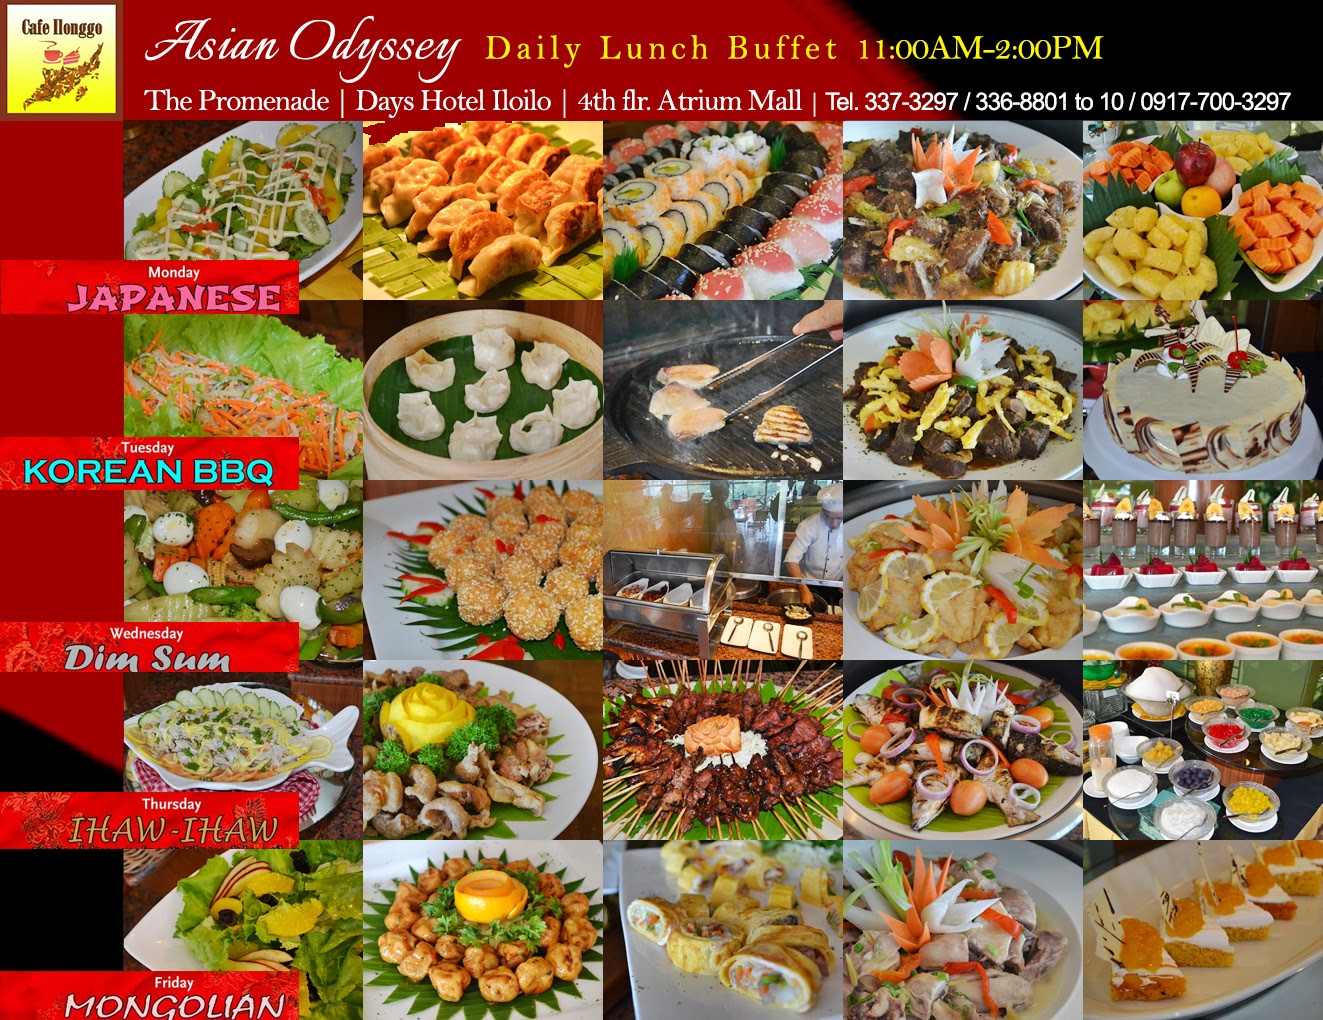 Iloilo city food days hotel Lunch Buffet